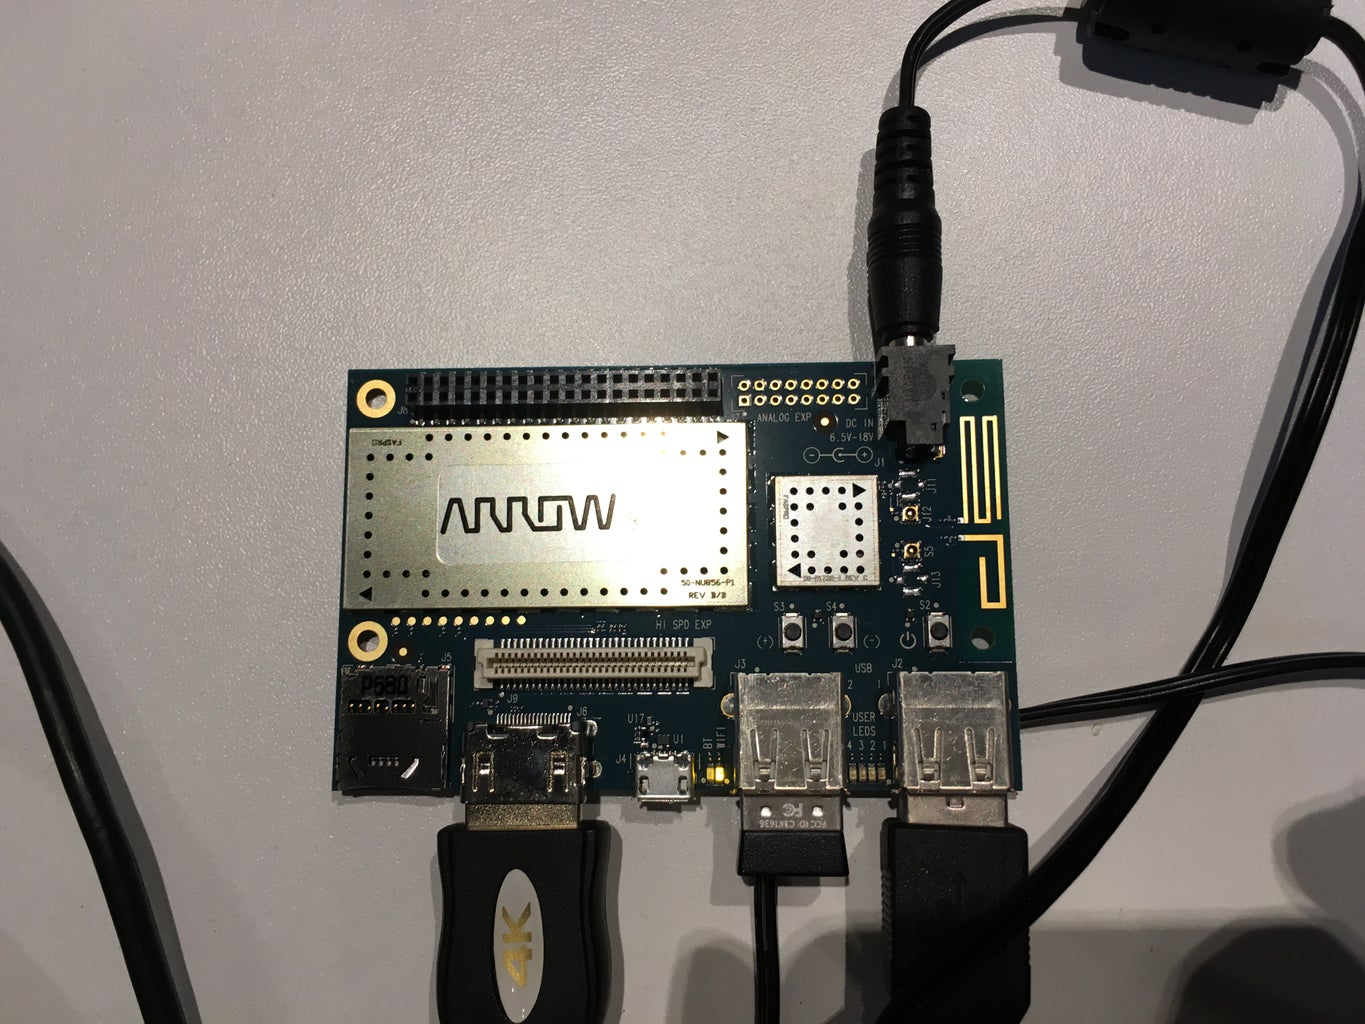 Make DragonBoard 410c a Wifi Hotspot With Linaro